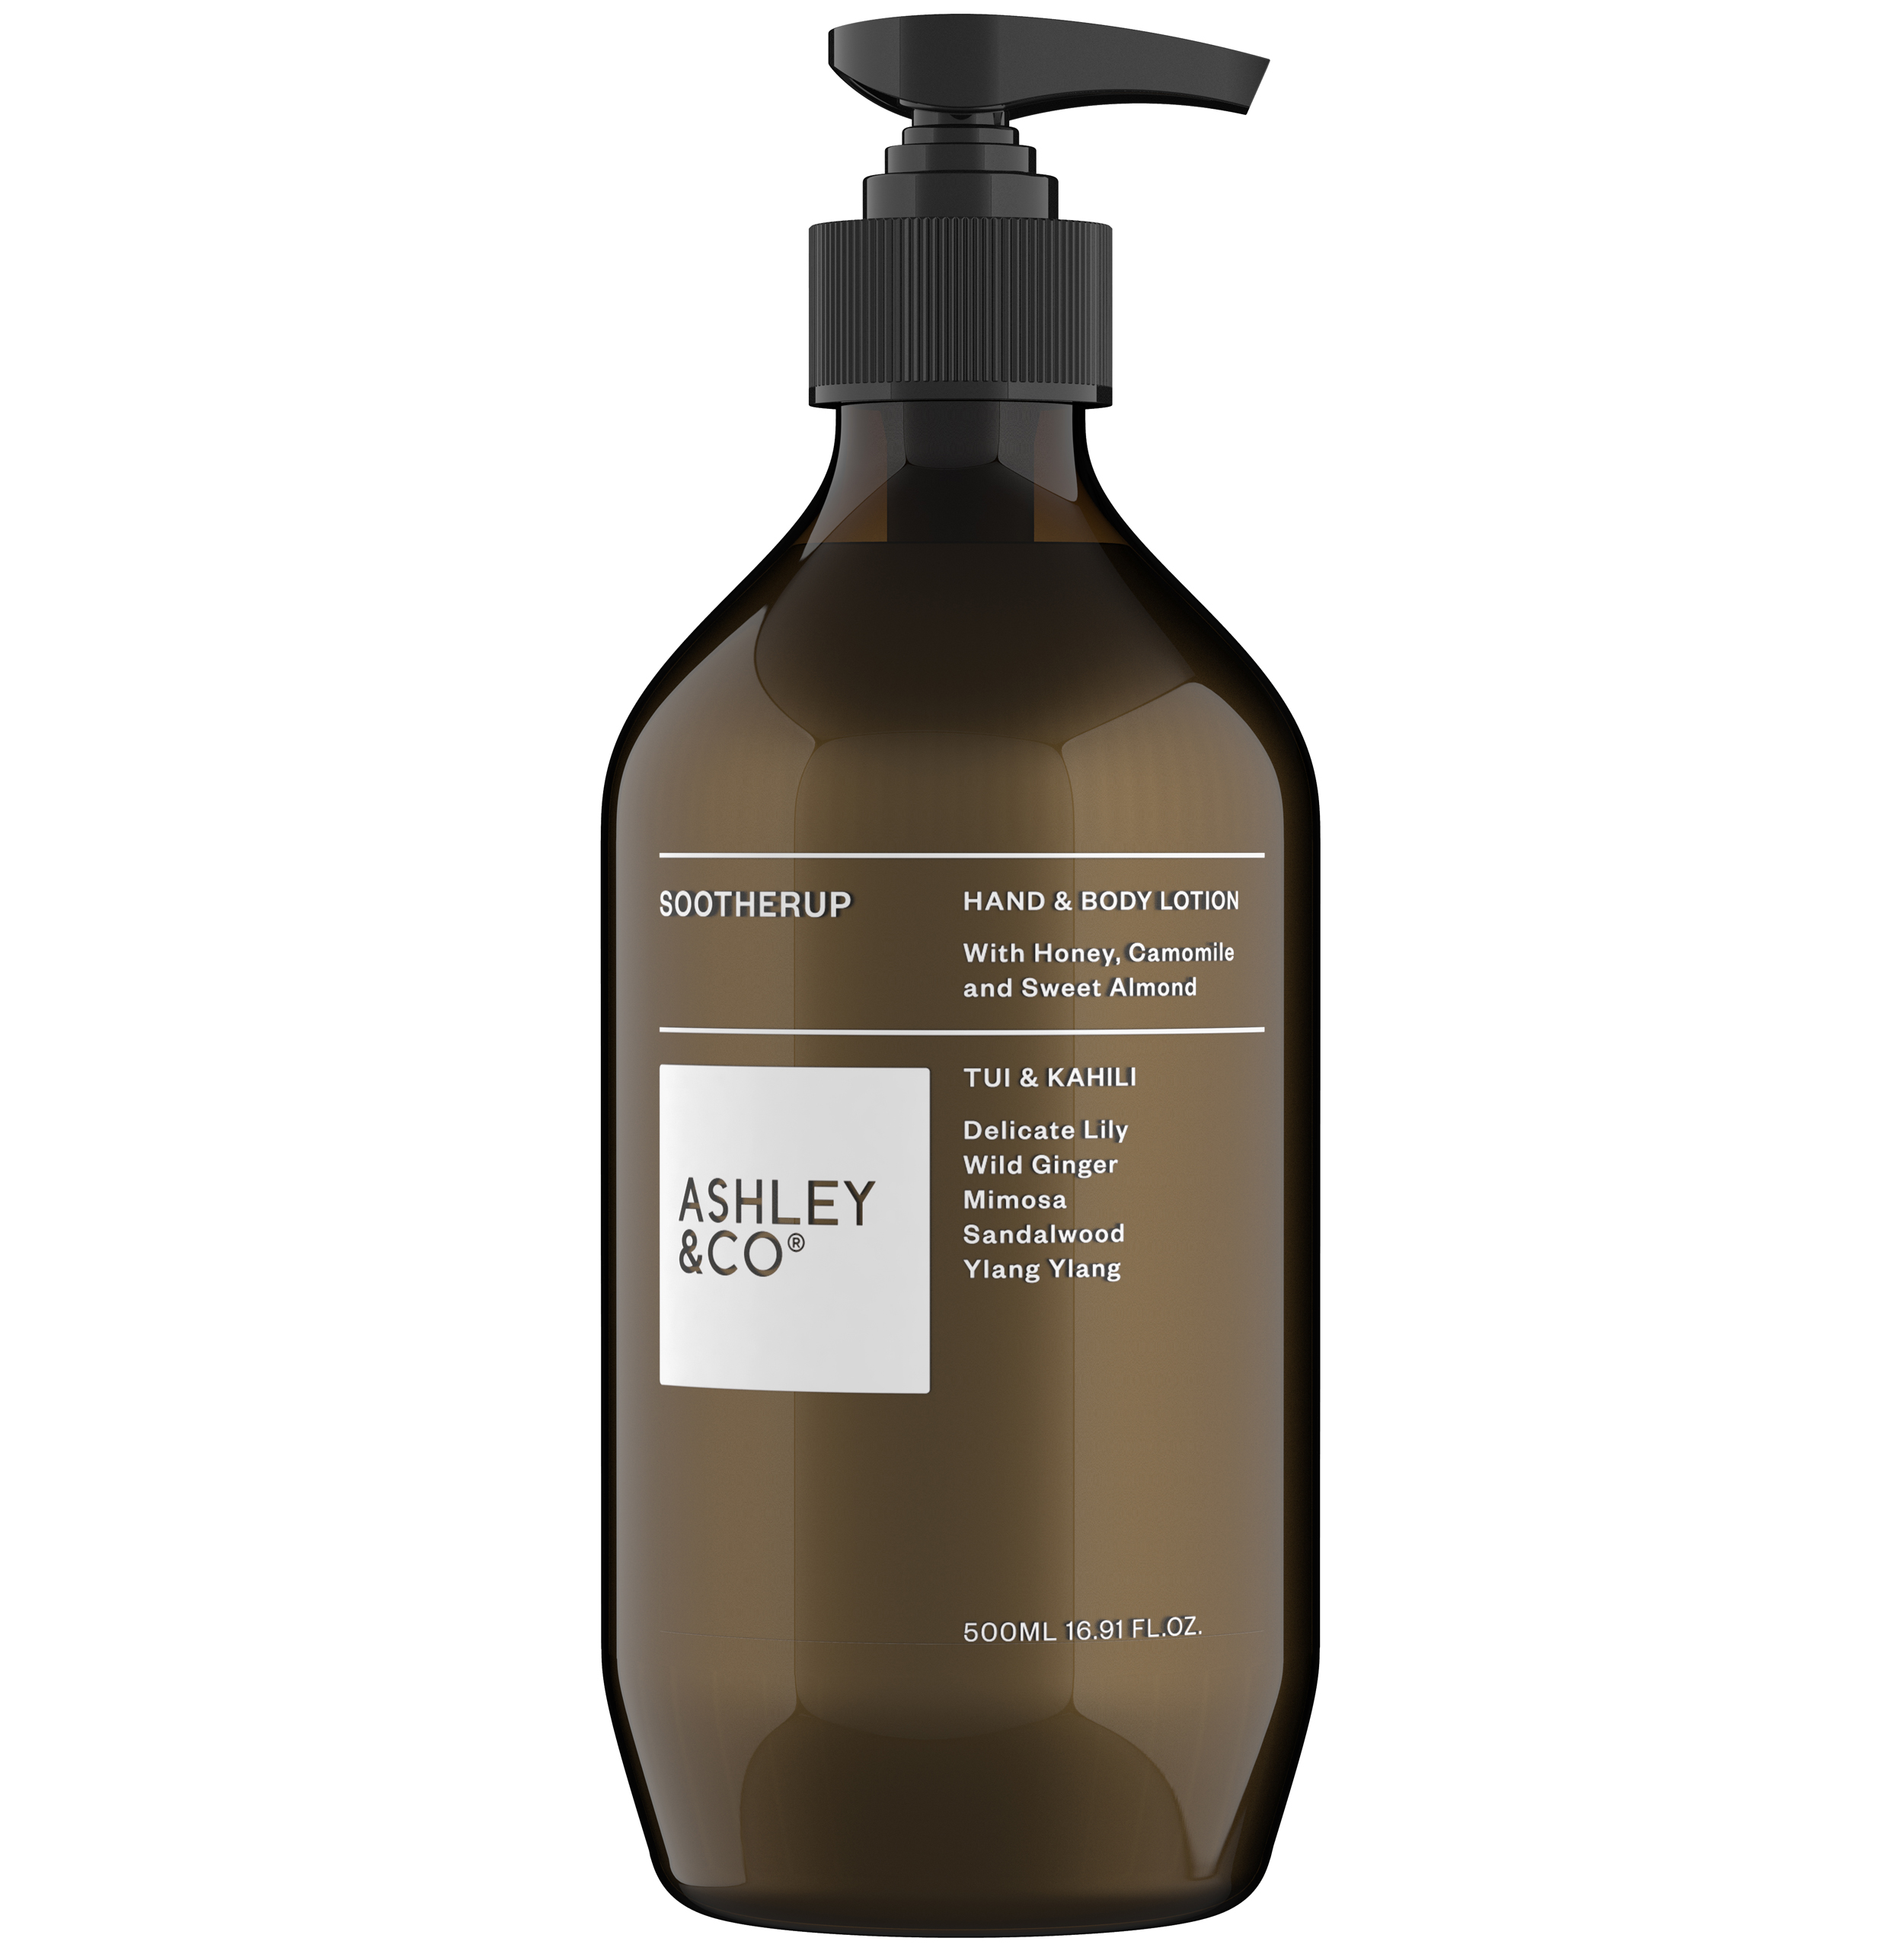 Ashley & Co Sootherup Tui & Kahili Hand and Body Lotion